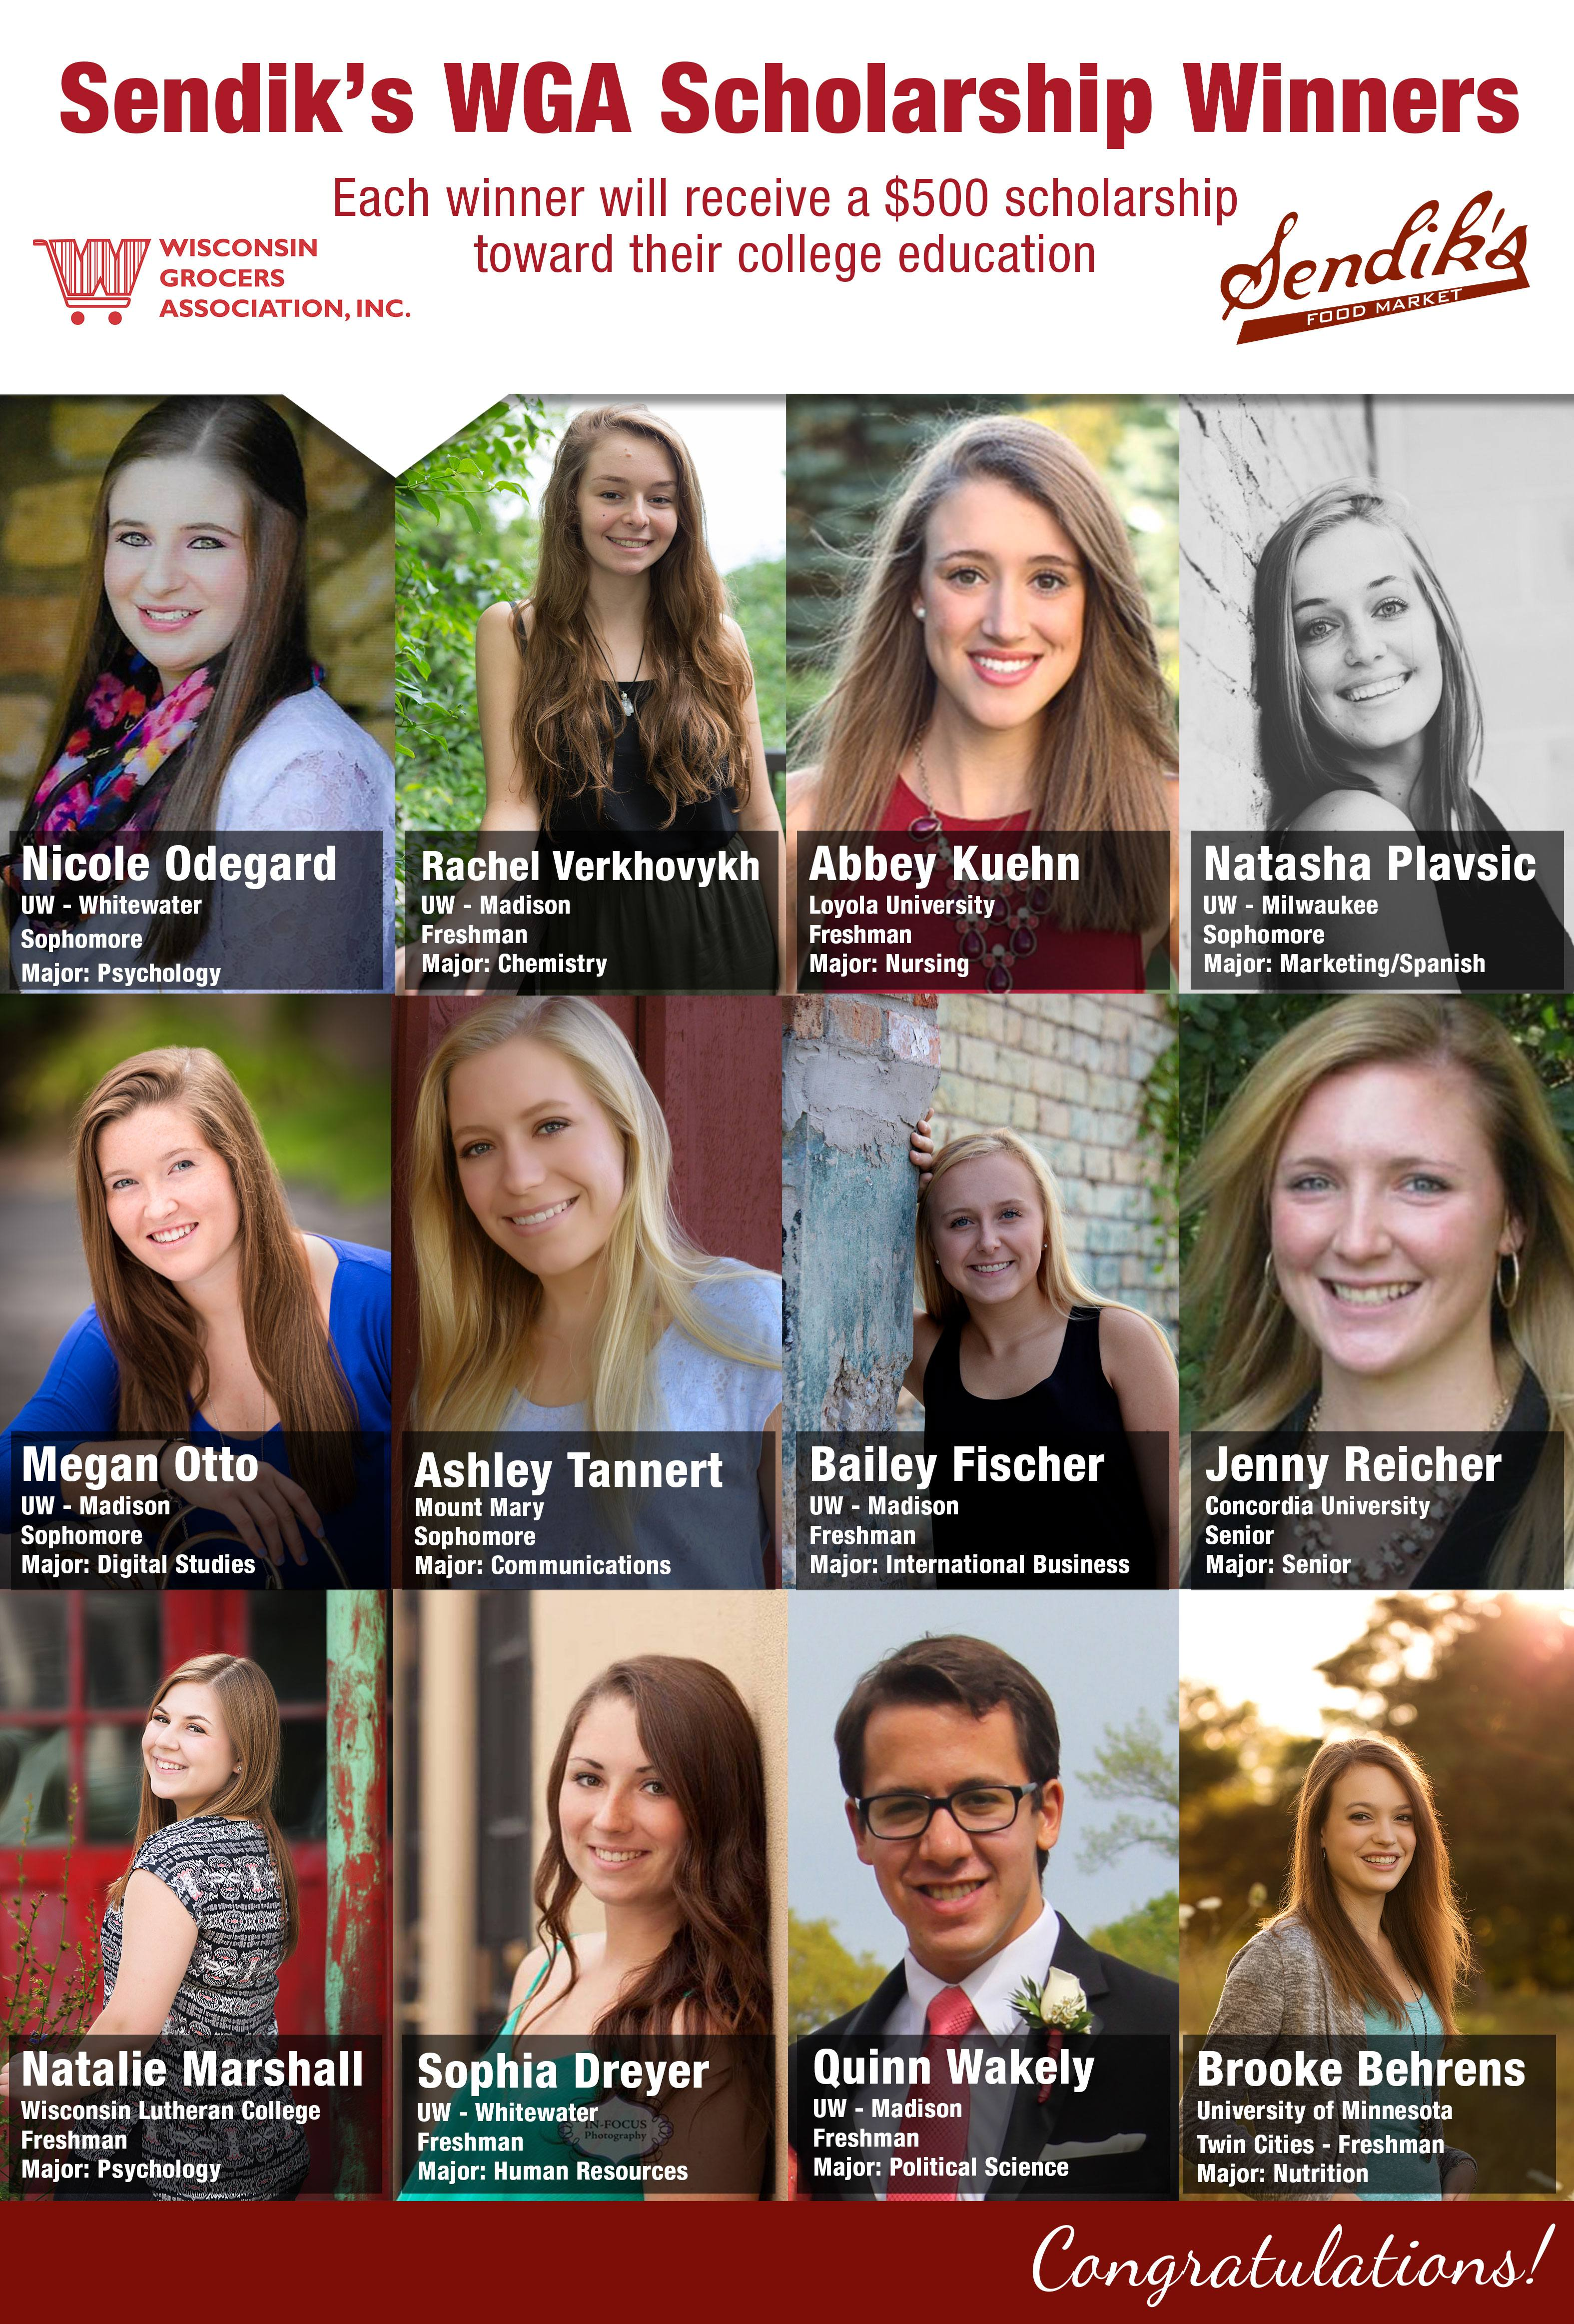 2016 WGA Scholarship Winners